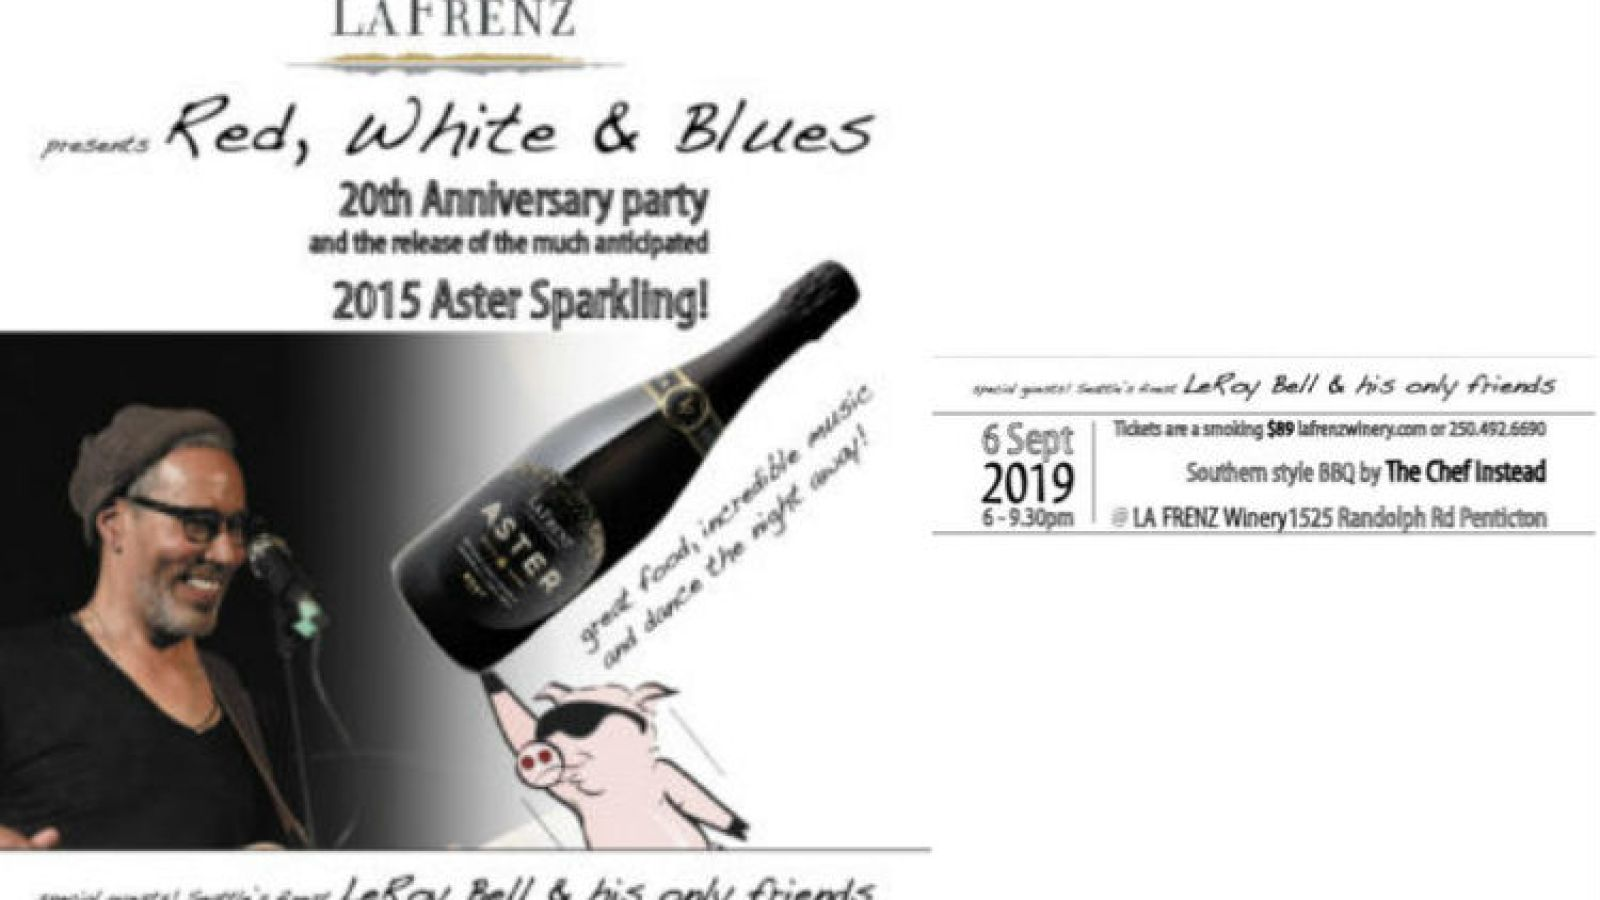 La Frenz Winery Red, White & Blues event